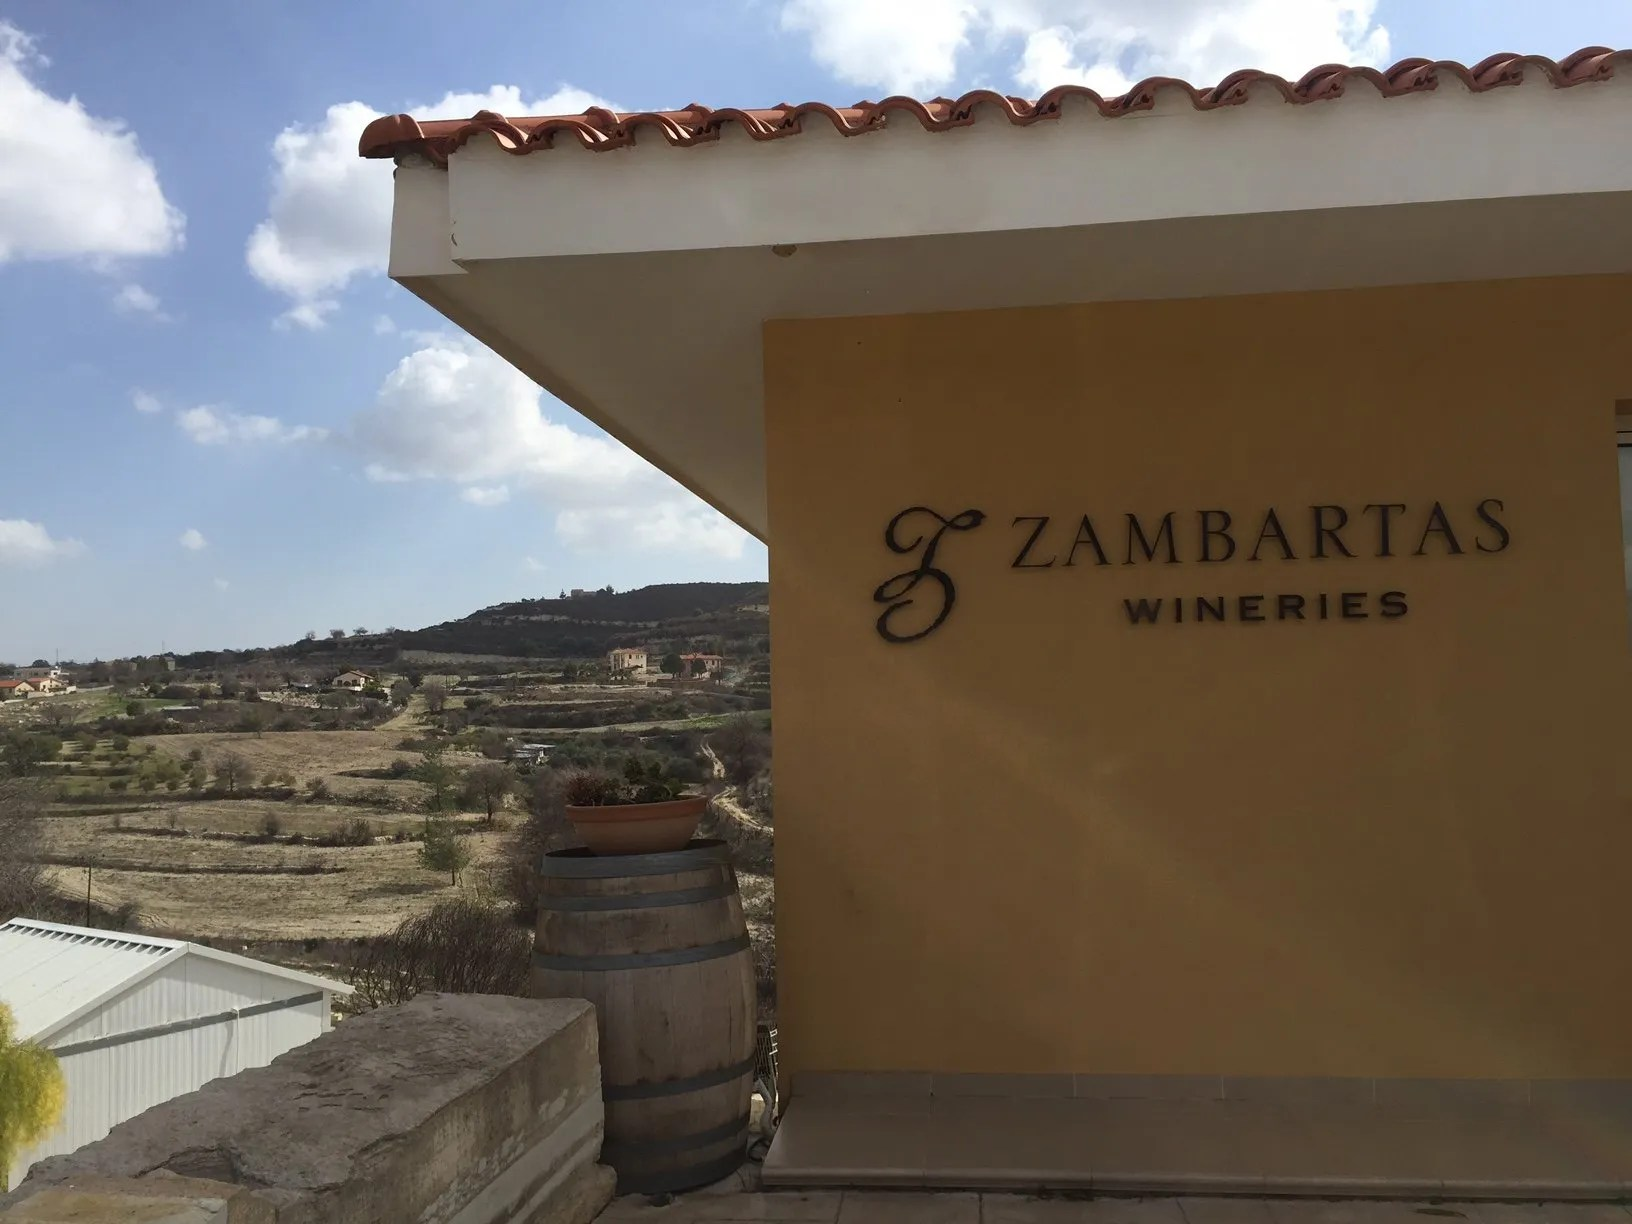 Zambartas Winery Building